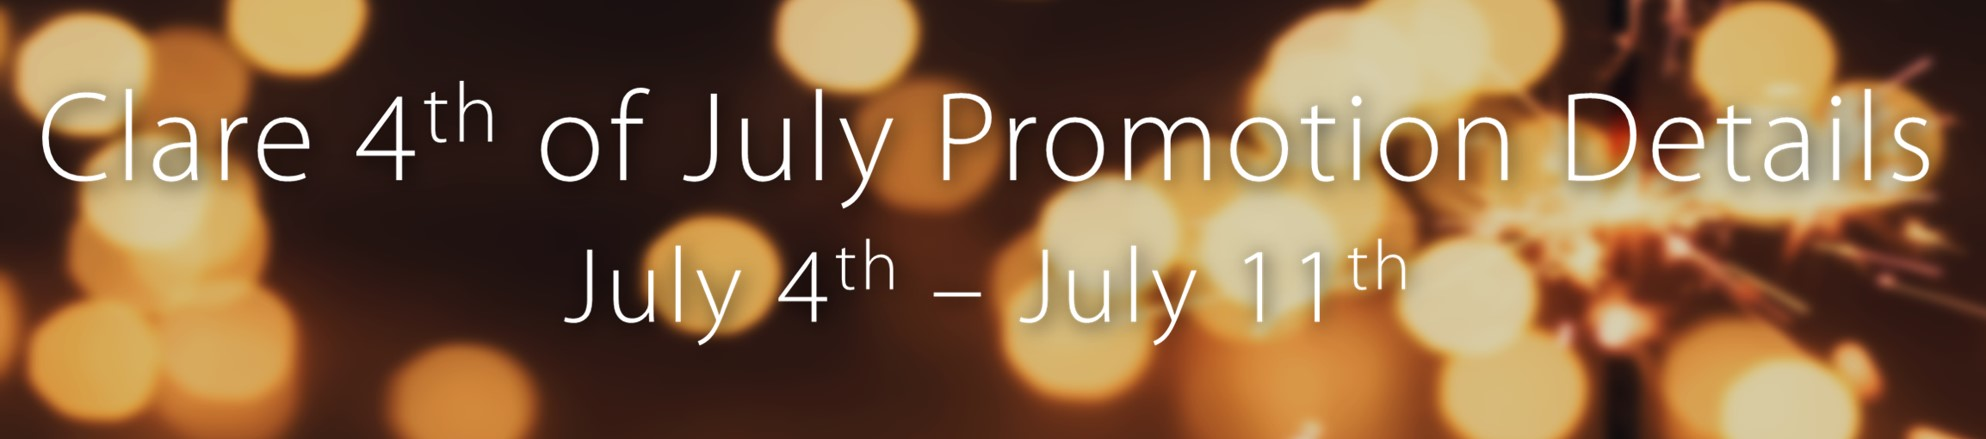 Dealer_News_4th_July_MCH_Promotion